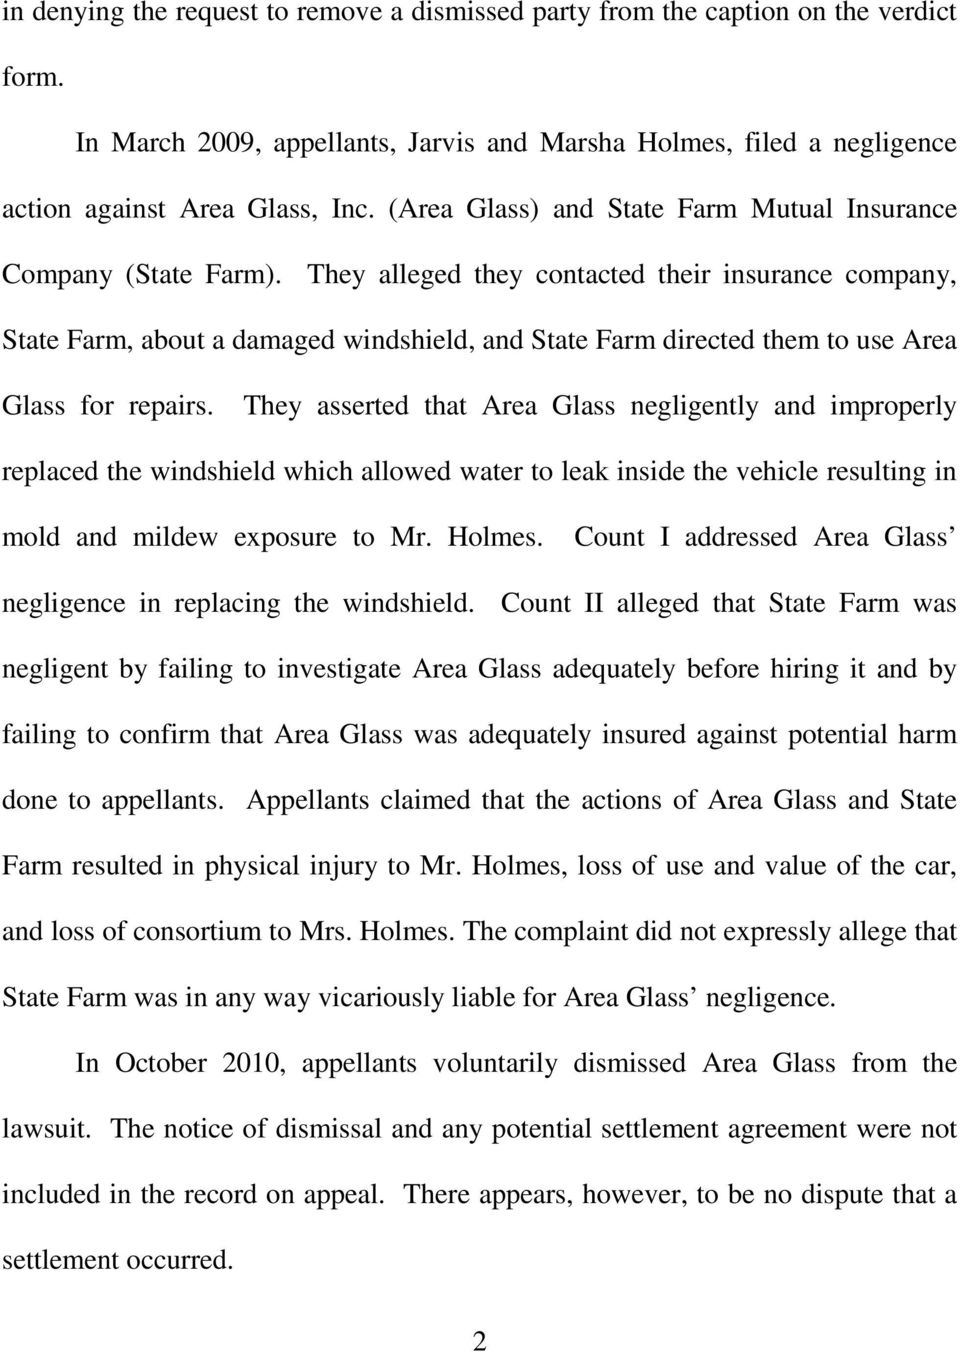 They alleged they contacted their insurance company, State Farm, about a damaged windshield, and State Farm directed them to use Area Glass for repairs.